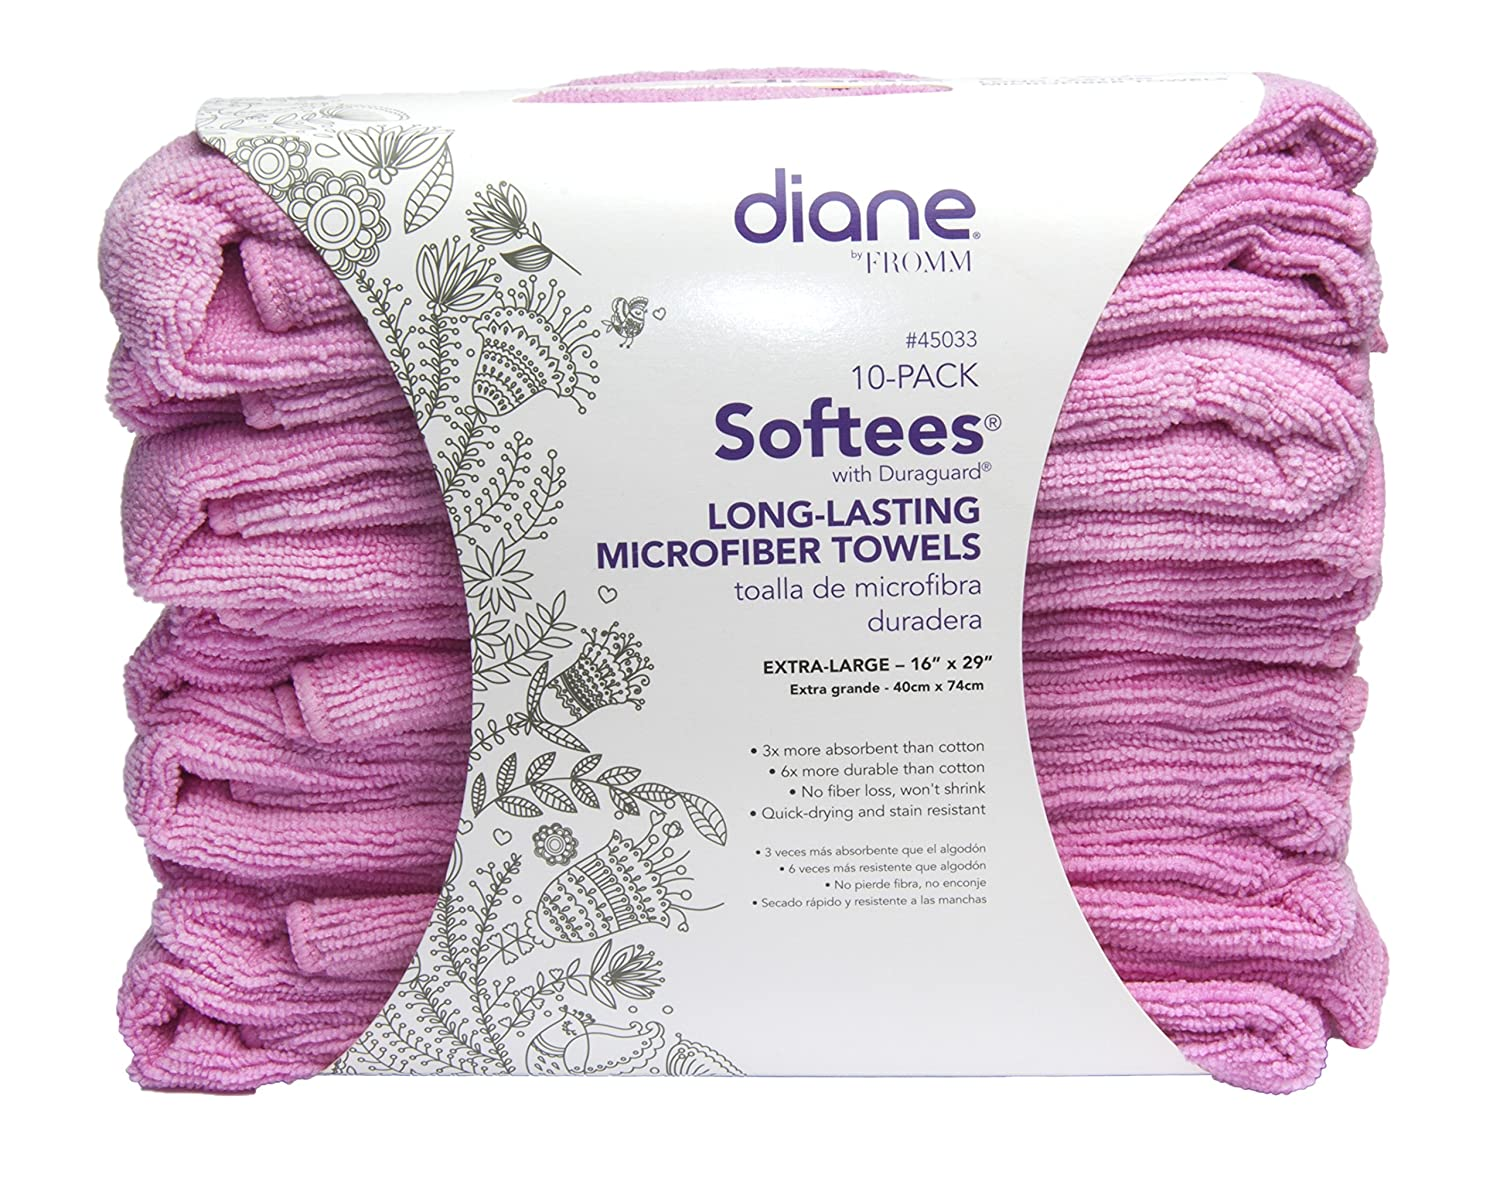 Amazon.com : Diane Softees with Duraguard, Pink, 10 Pack, 45033 : Hair Drying Towels : Beauty